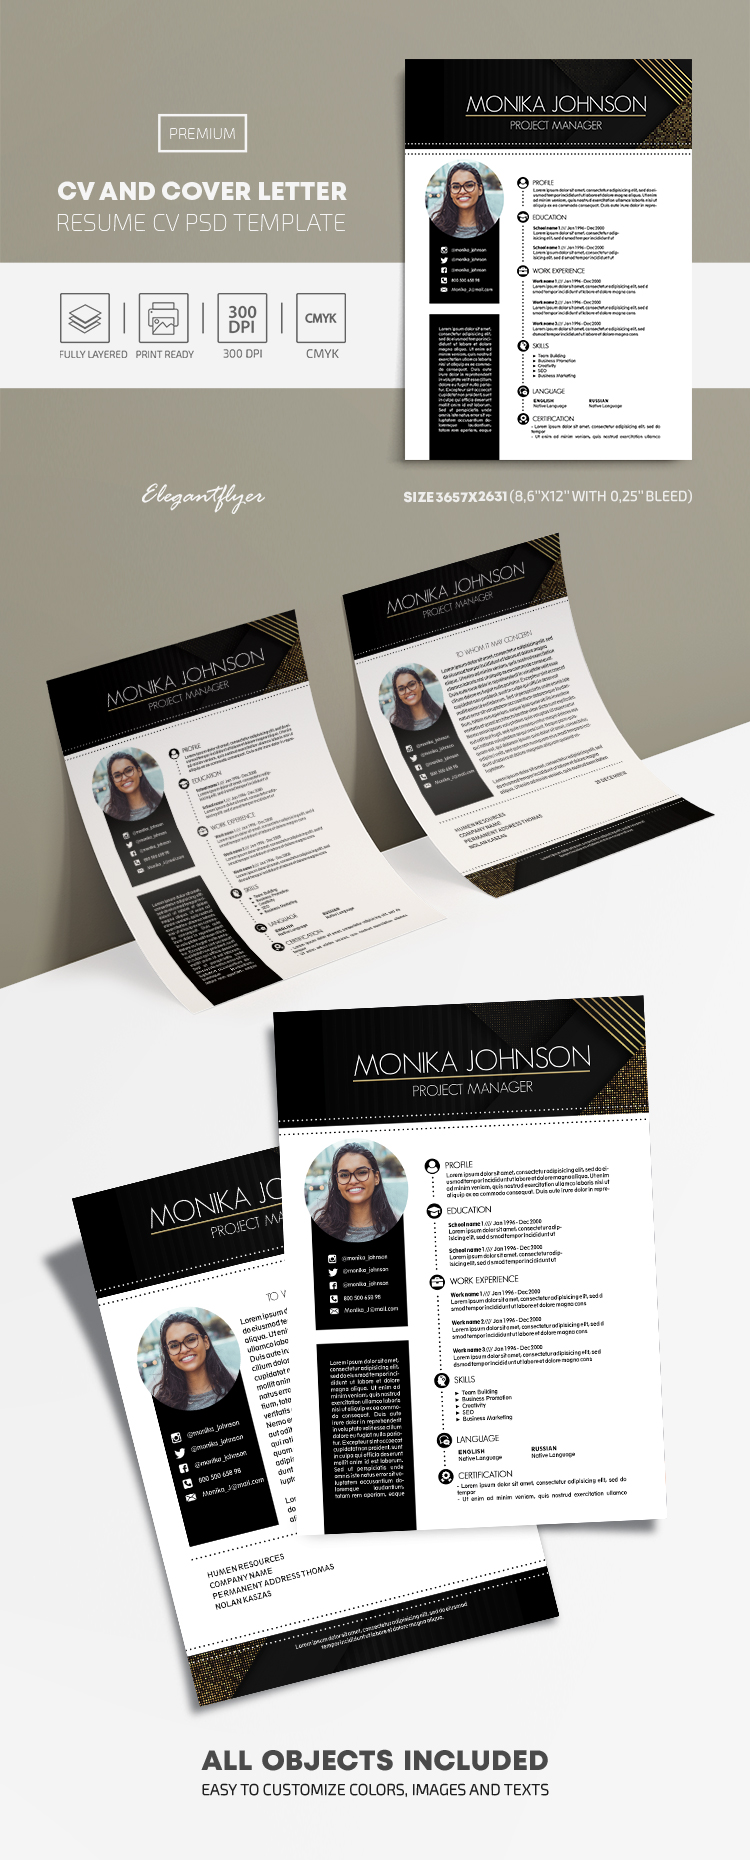 CV and Cover Letter – Premium Resume PSD Template